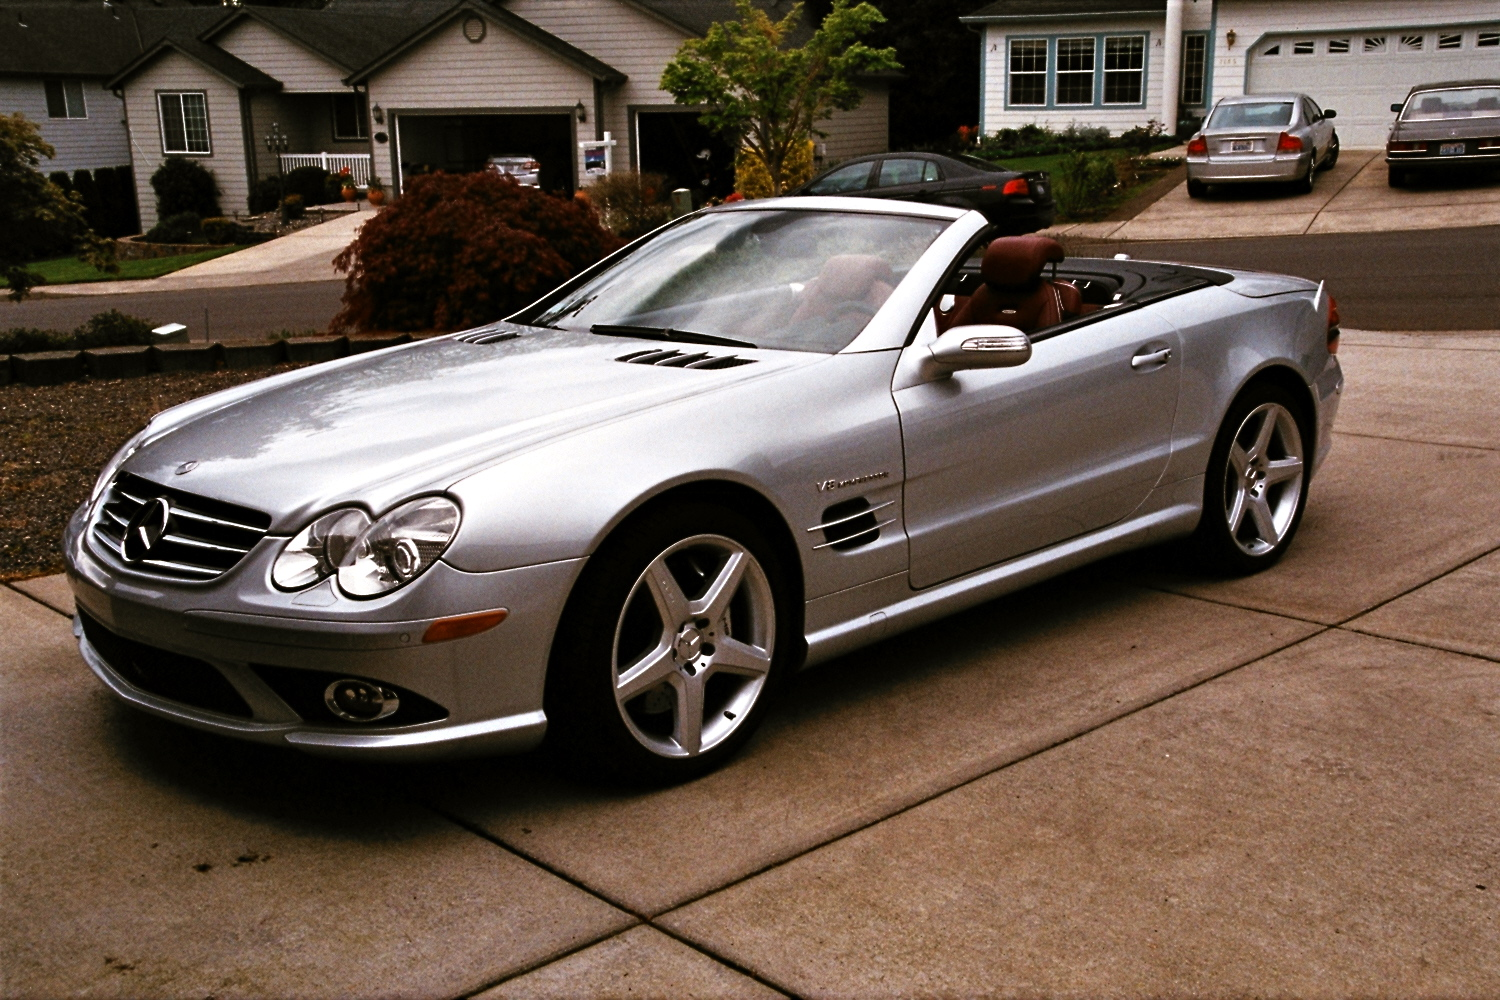 2007 mercedes benz sl class pictures cargurus for Mercedes benz sl55